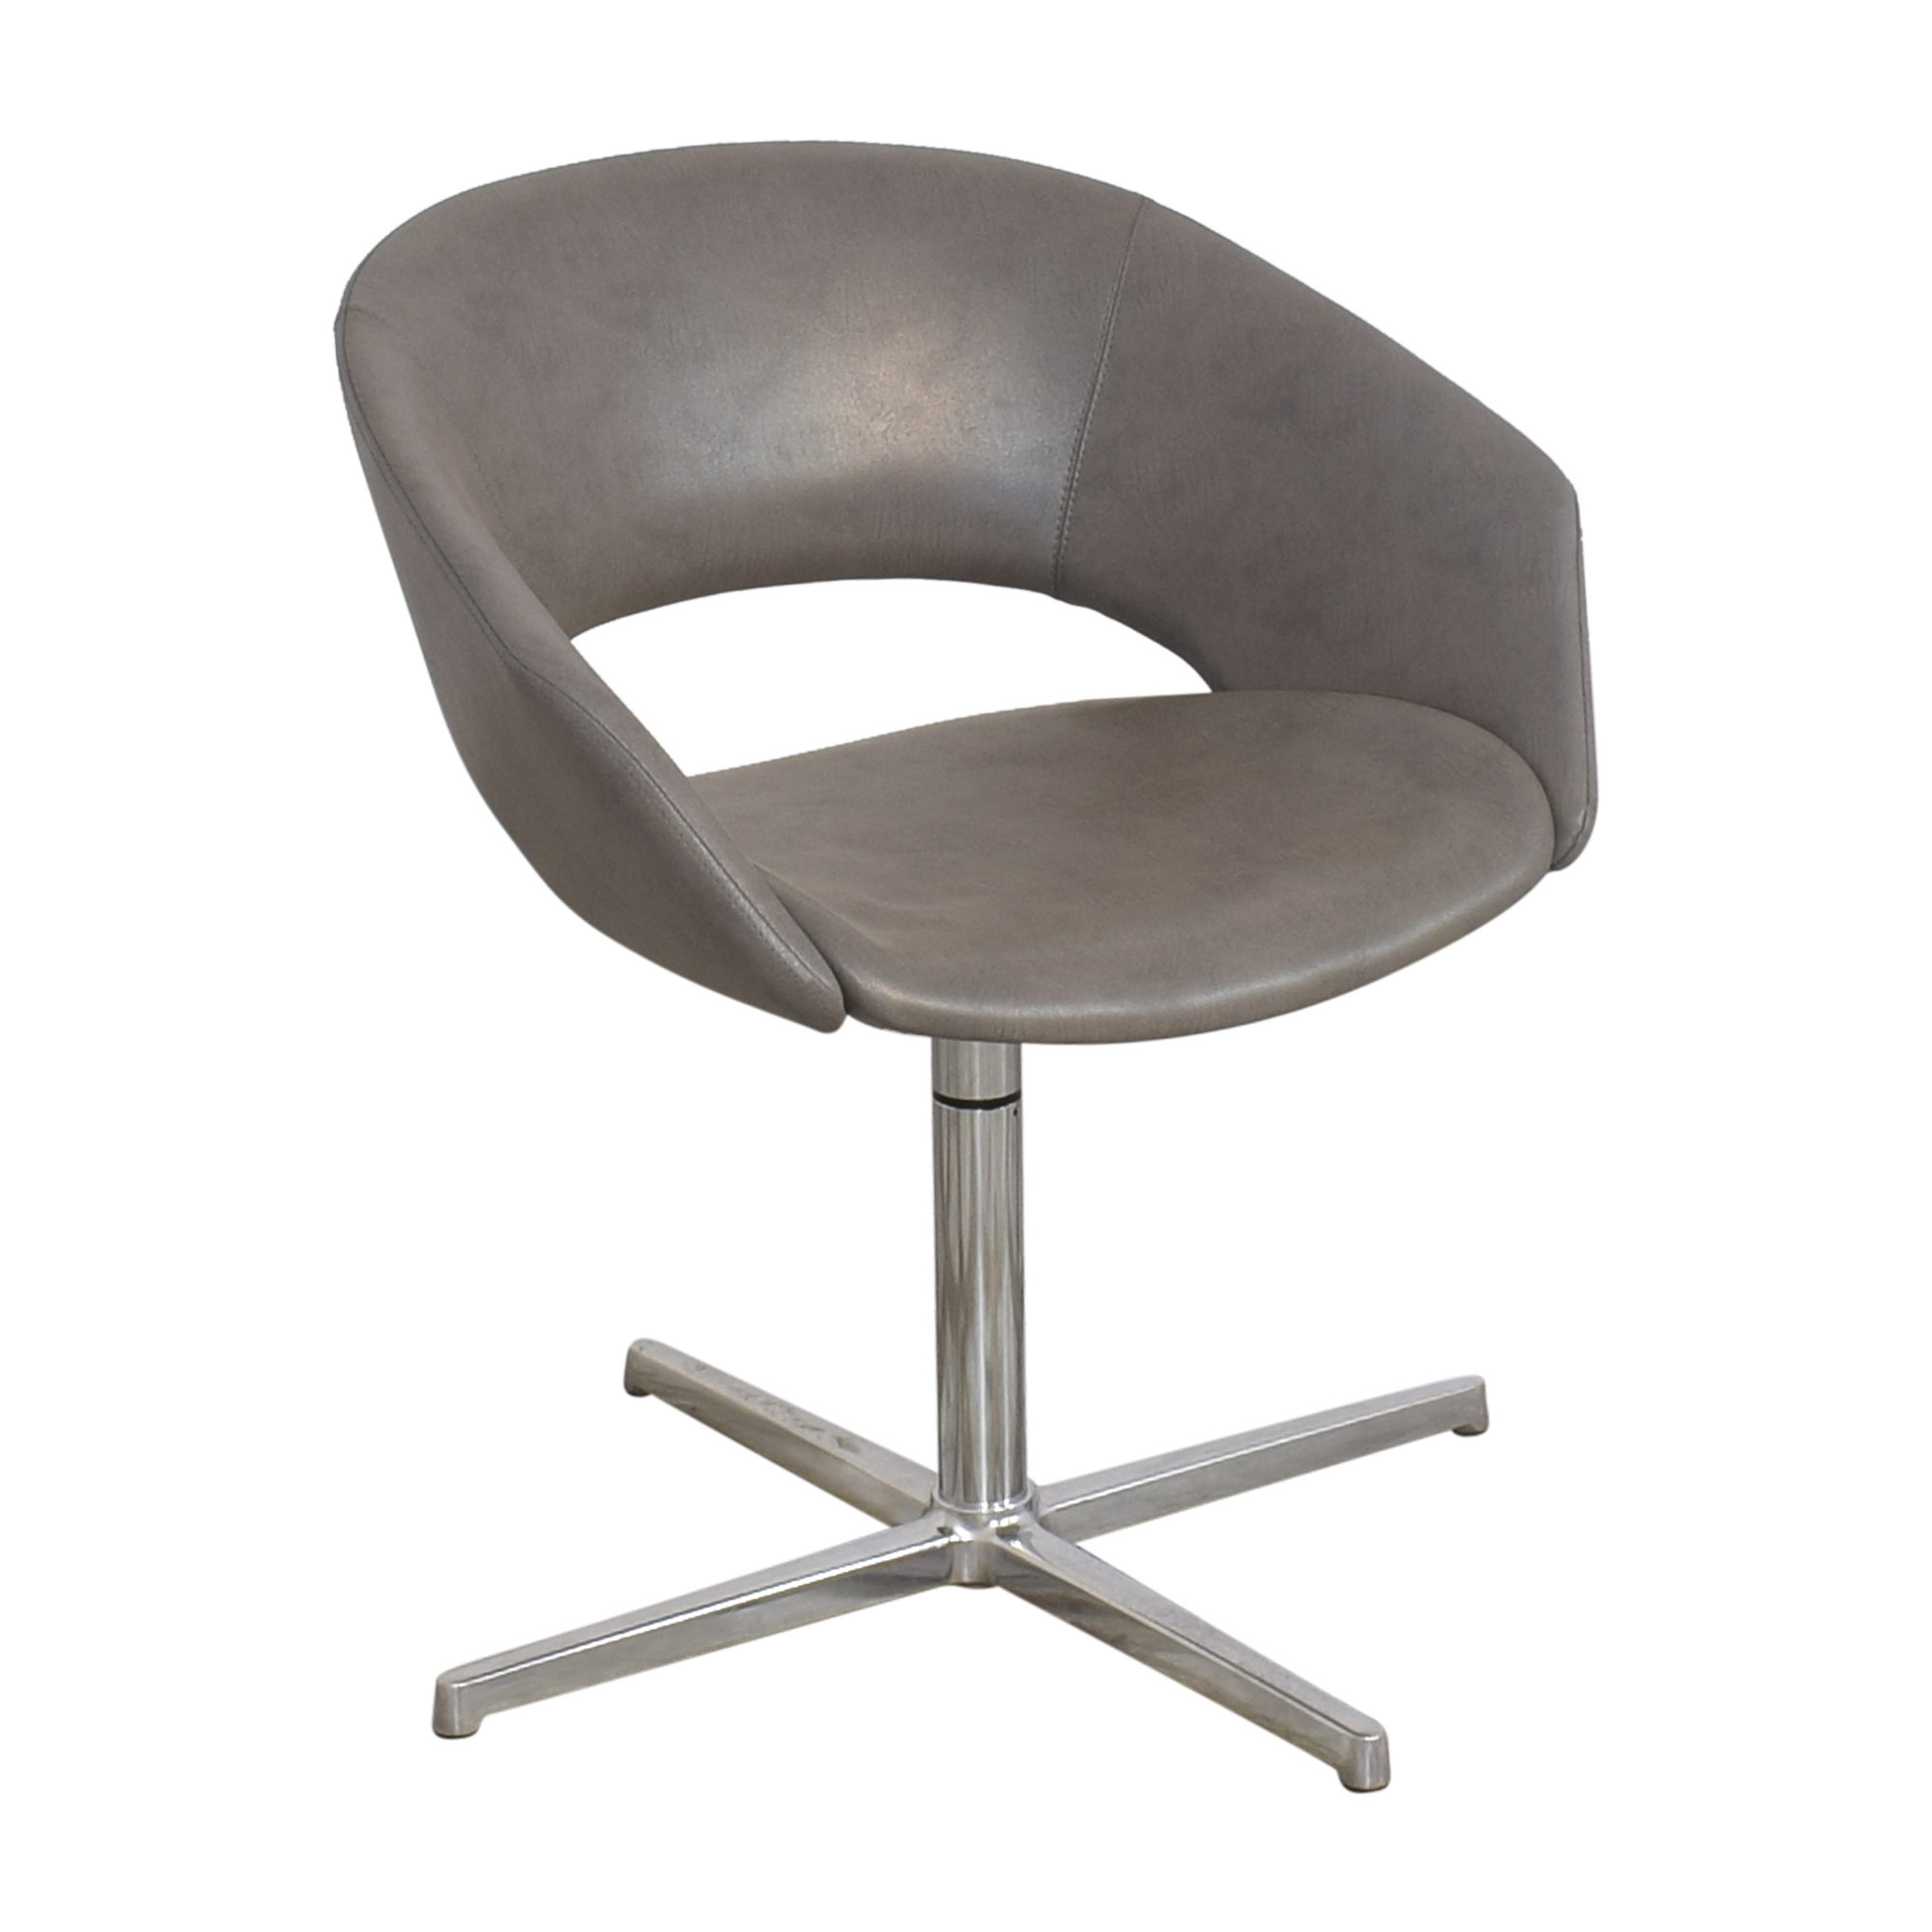 Leland Mod Pedestal Swivel Chair / Accent Chairs